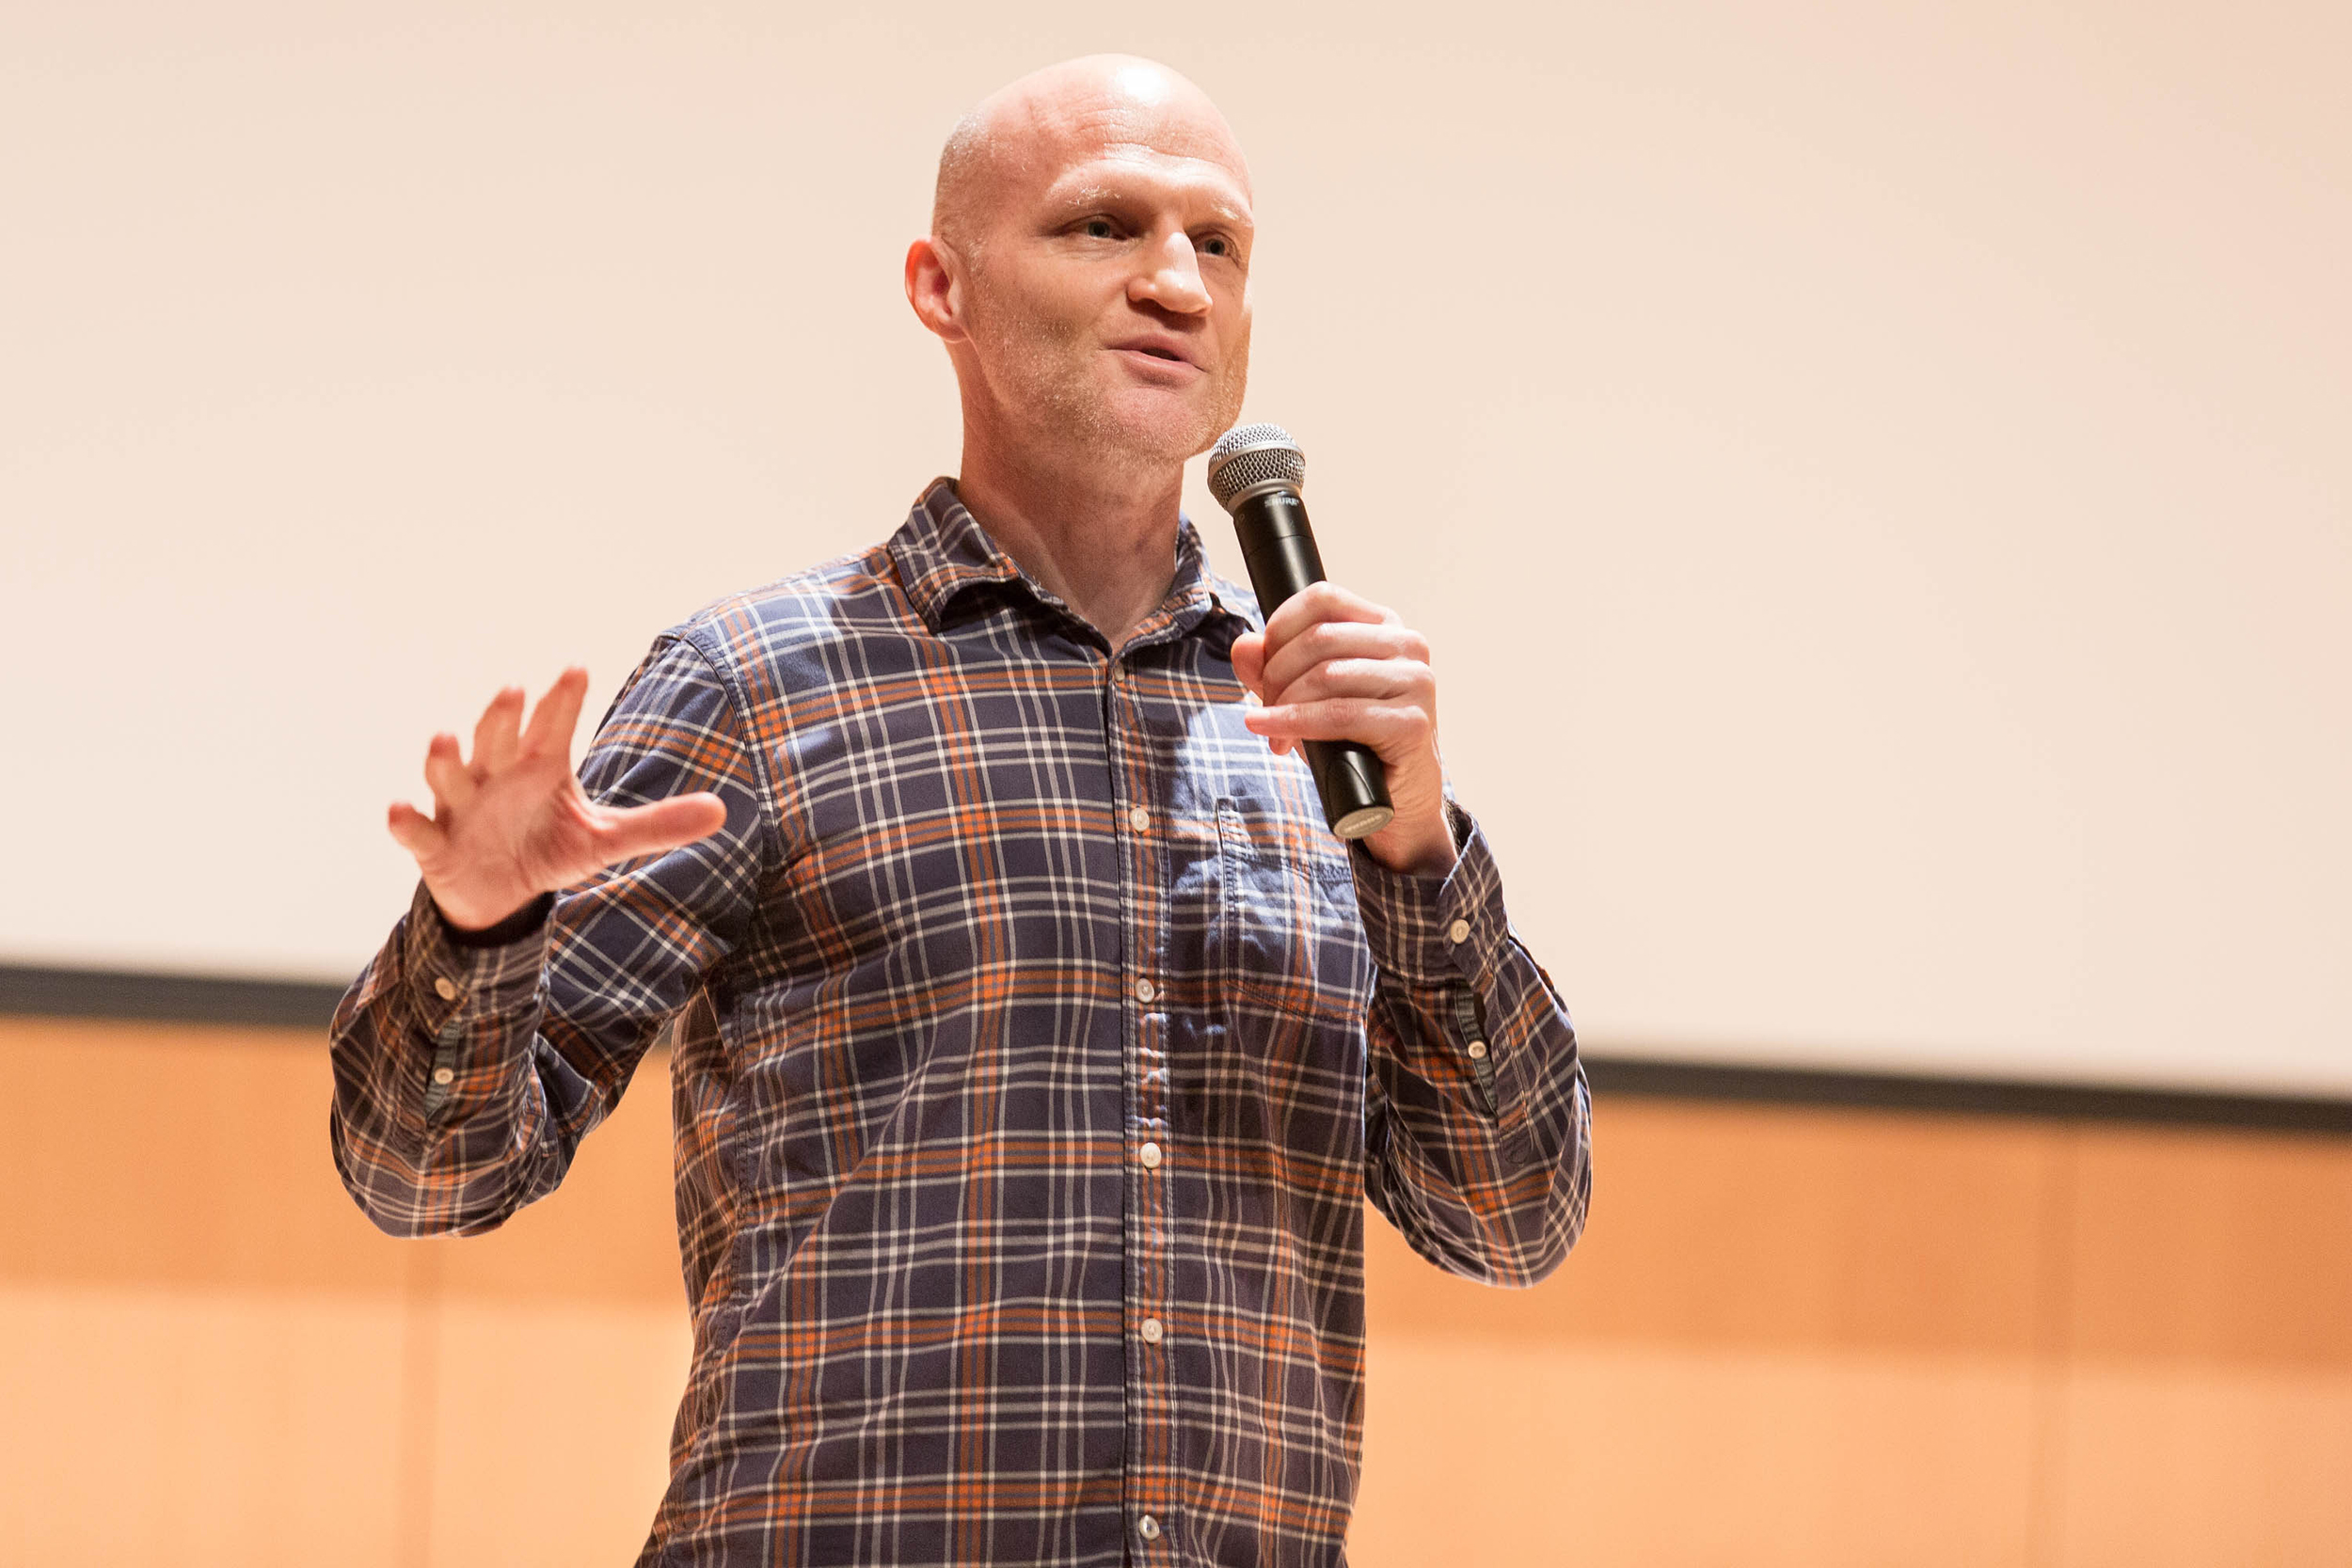 Founder of  The Onion  Scott Dikkers came to Doty Recital Hall on April 18 to speak about confrontations with failure followed by his path to success. Dikkers urged students to pursue their passions and to find their purpose (Annalee Bainnson/staff photographer).